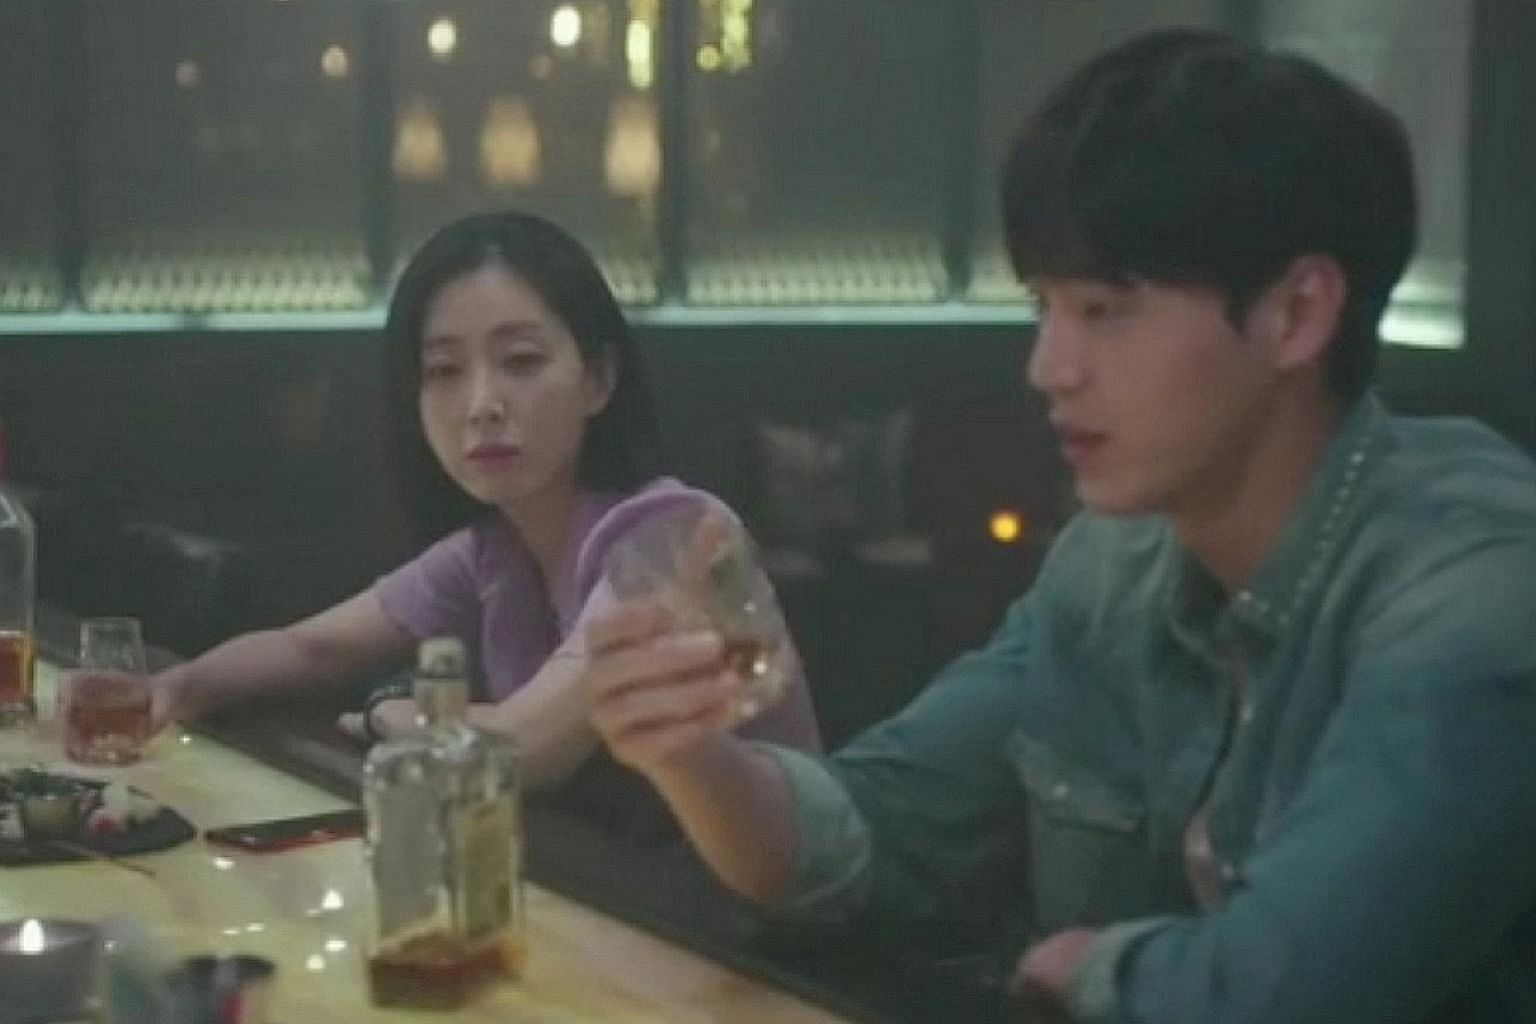 (Above) Graceful Friends stars Song Yoon-ah (above, left) and Lee Tae-hwan (above, right). (Right) A Quest To Heal stars Carrie Wong (right) and Qi Yuwu (far right).